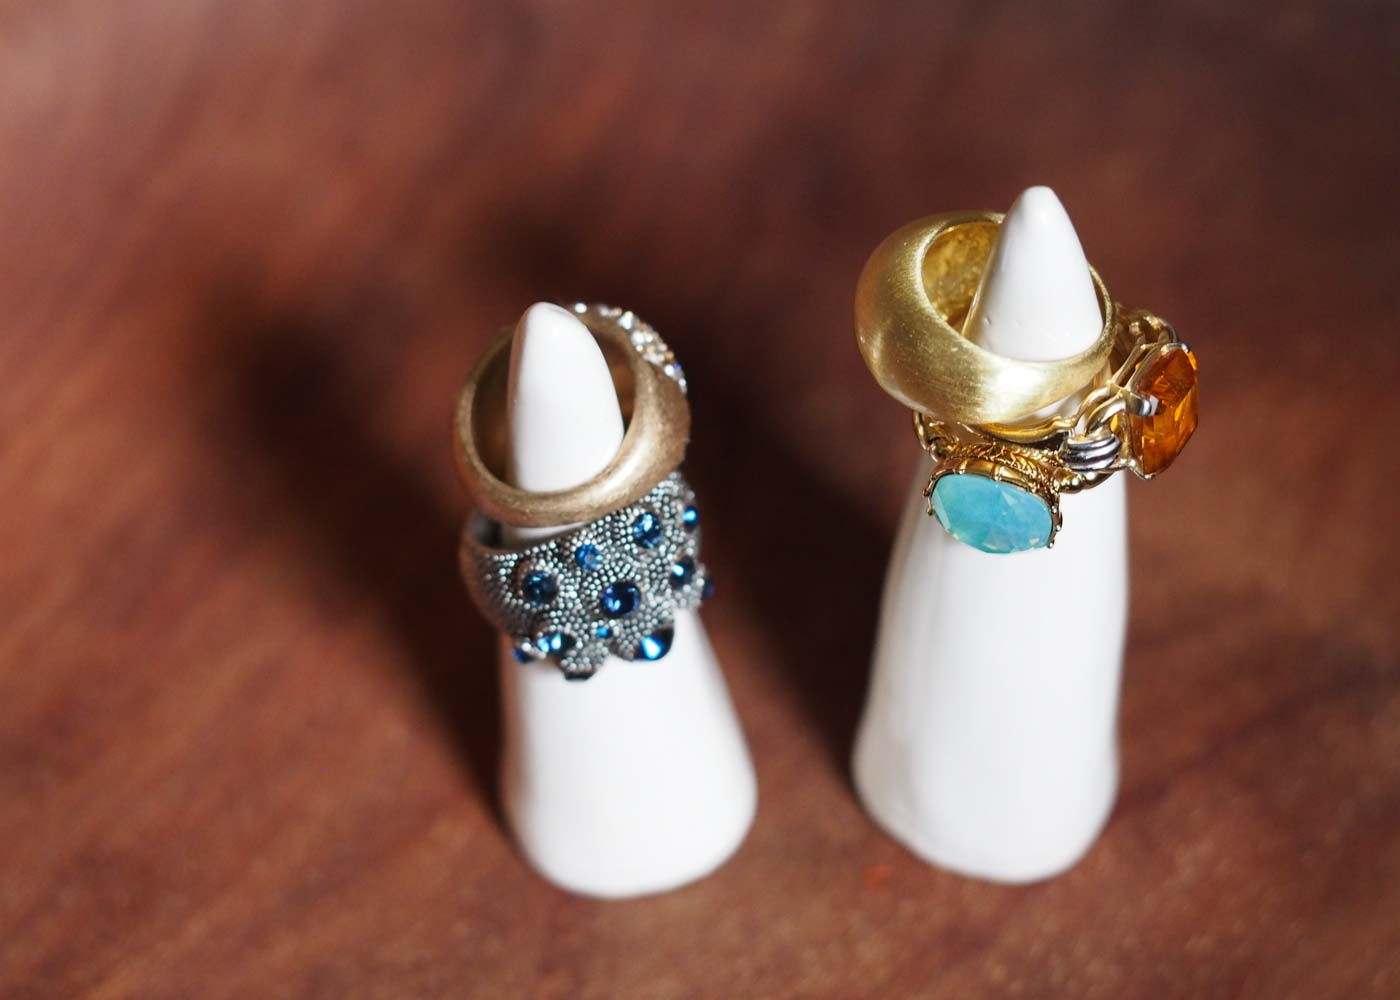 White ceramic ring cones made by Sally, the maker behind Etsy store ZebraWingStudio.